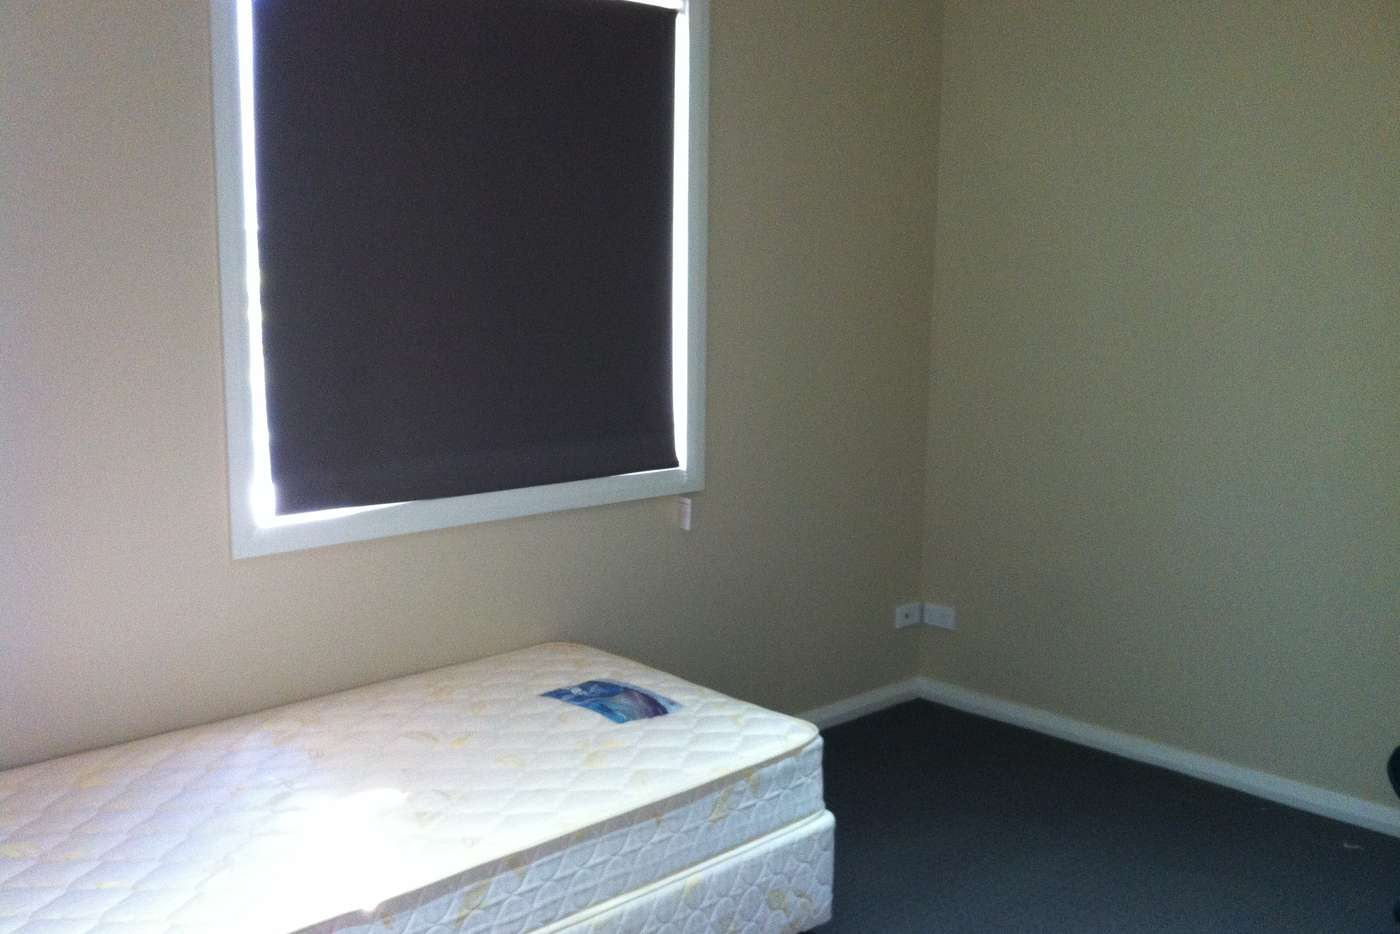 Sixth view of Homely house listing, 65 Fussell Street (granny flat), Birmingham Gardens NSW 2287